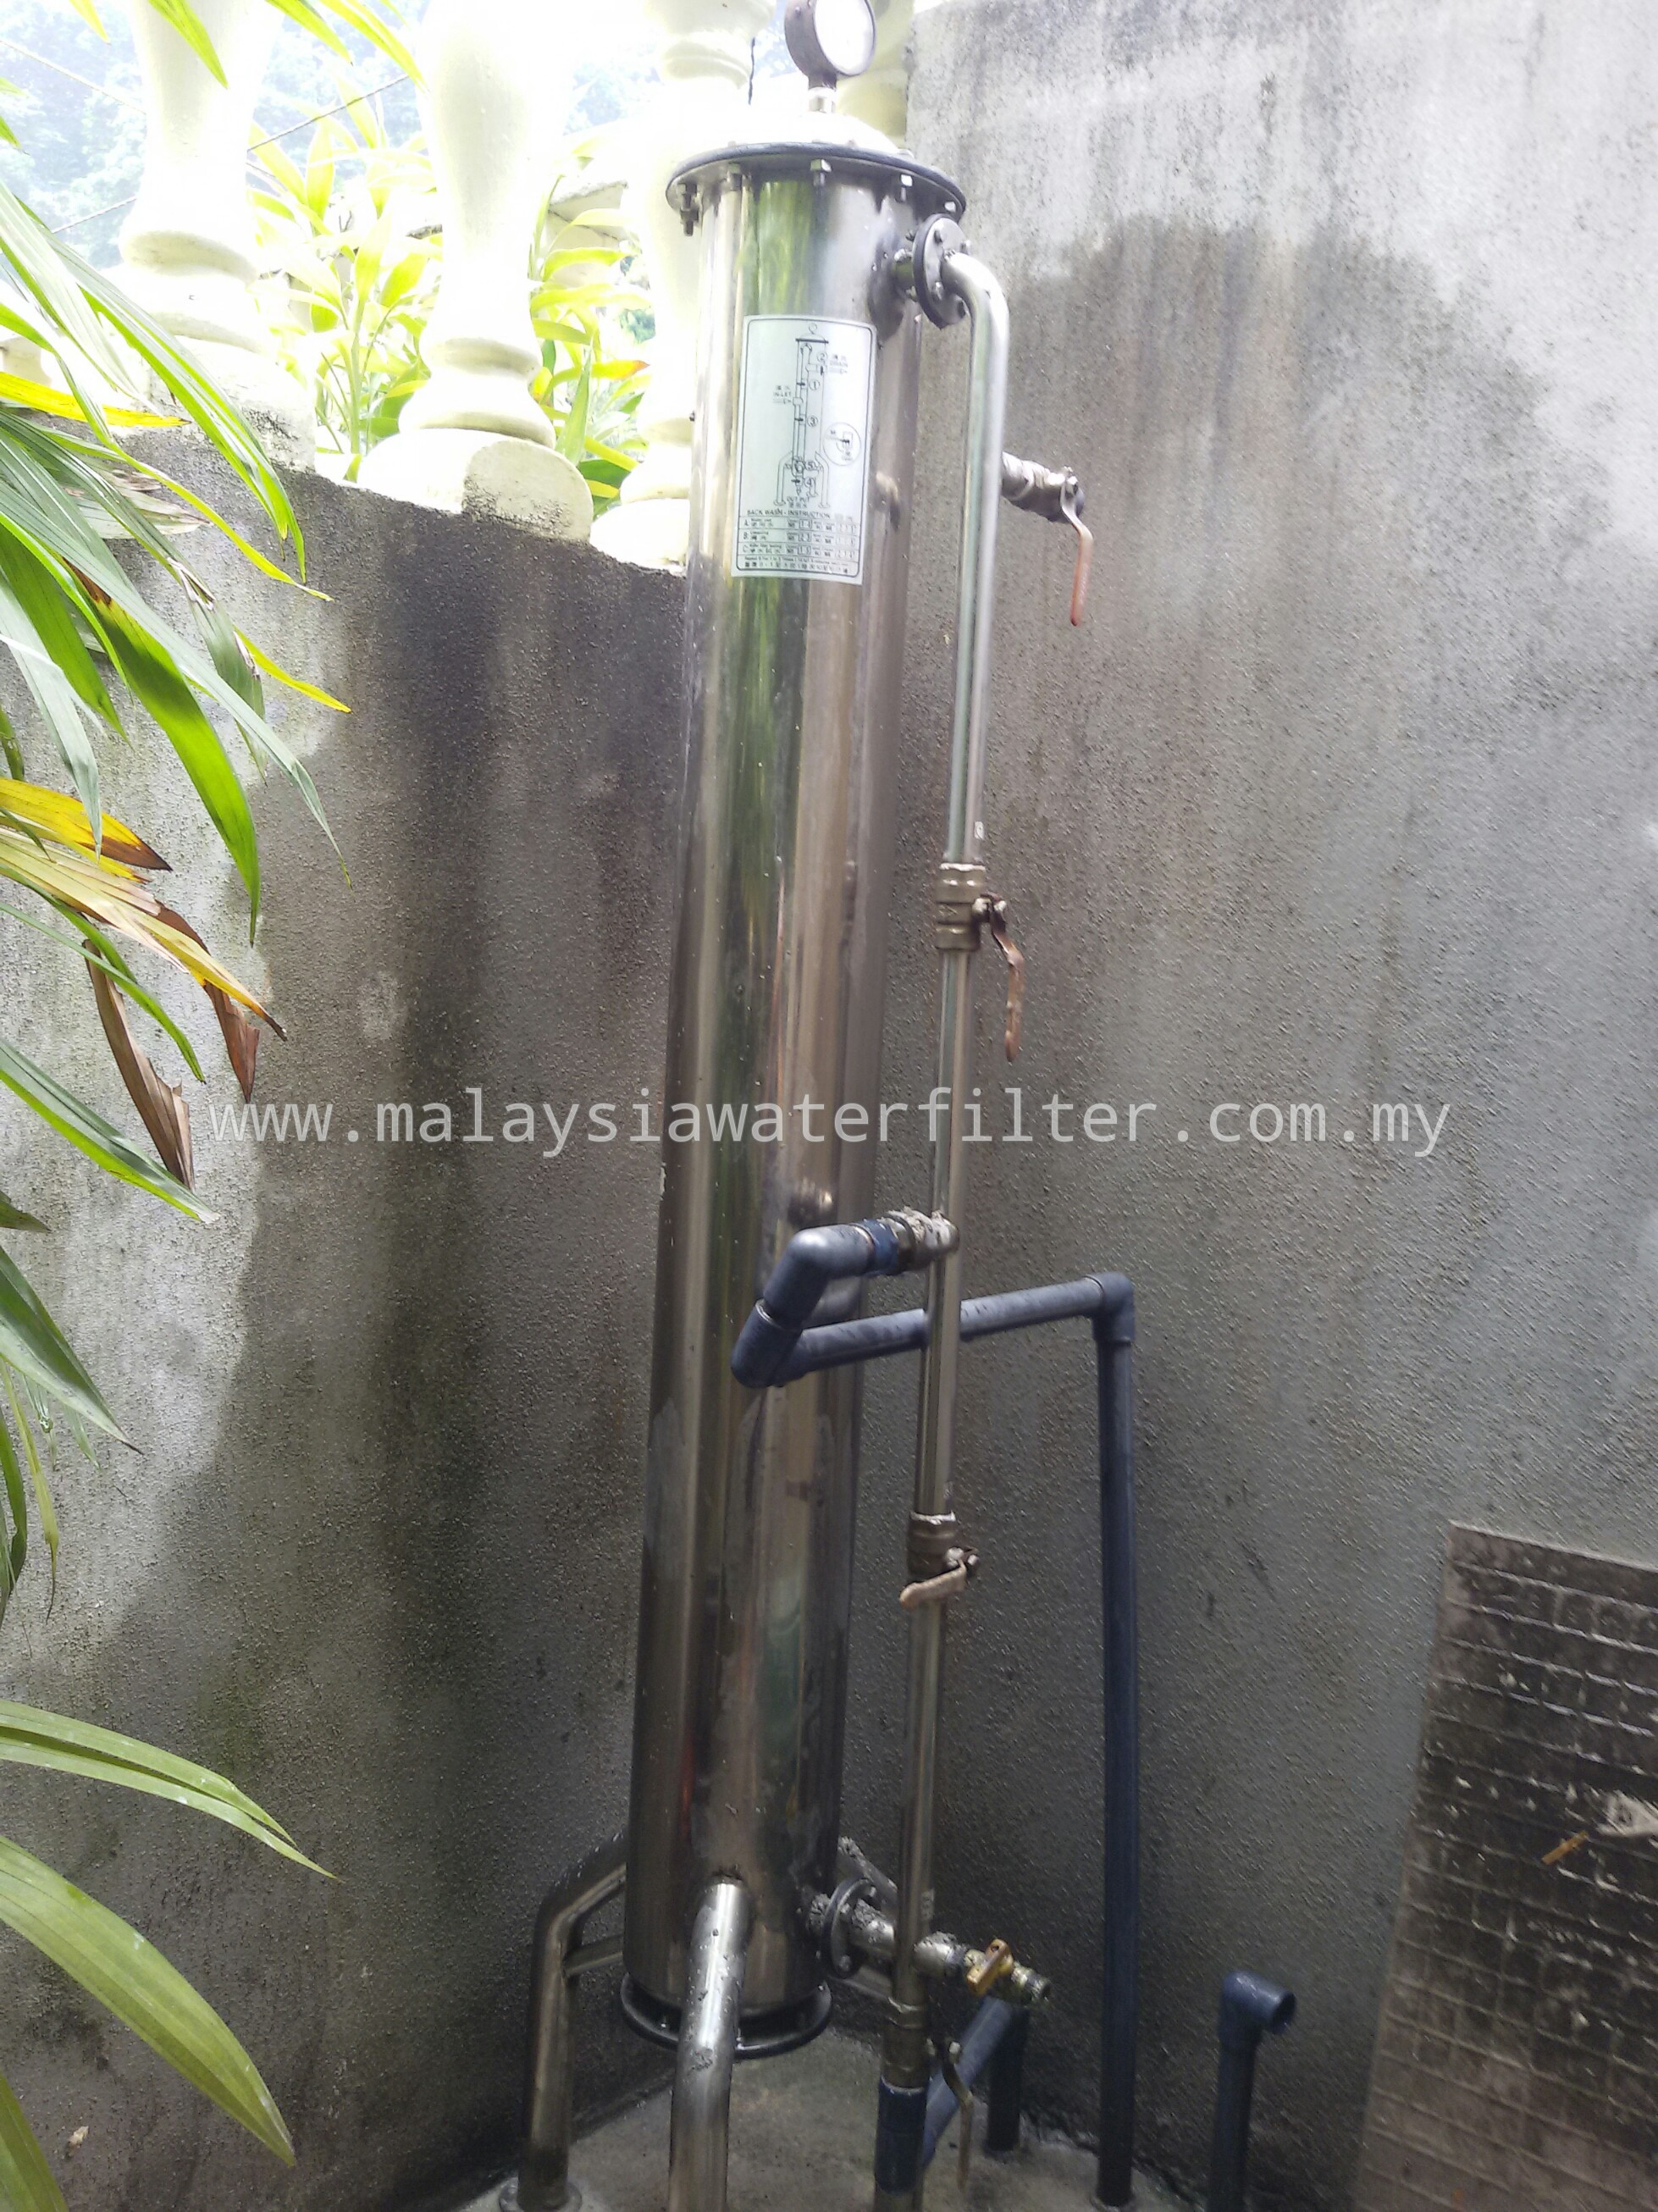 Replace Filters Case 6 Rocket Stainless Steel Whole